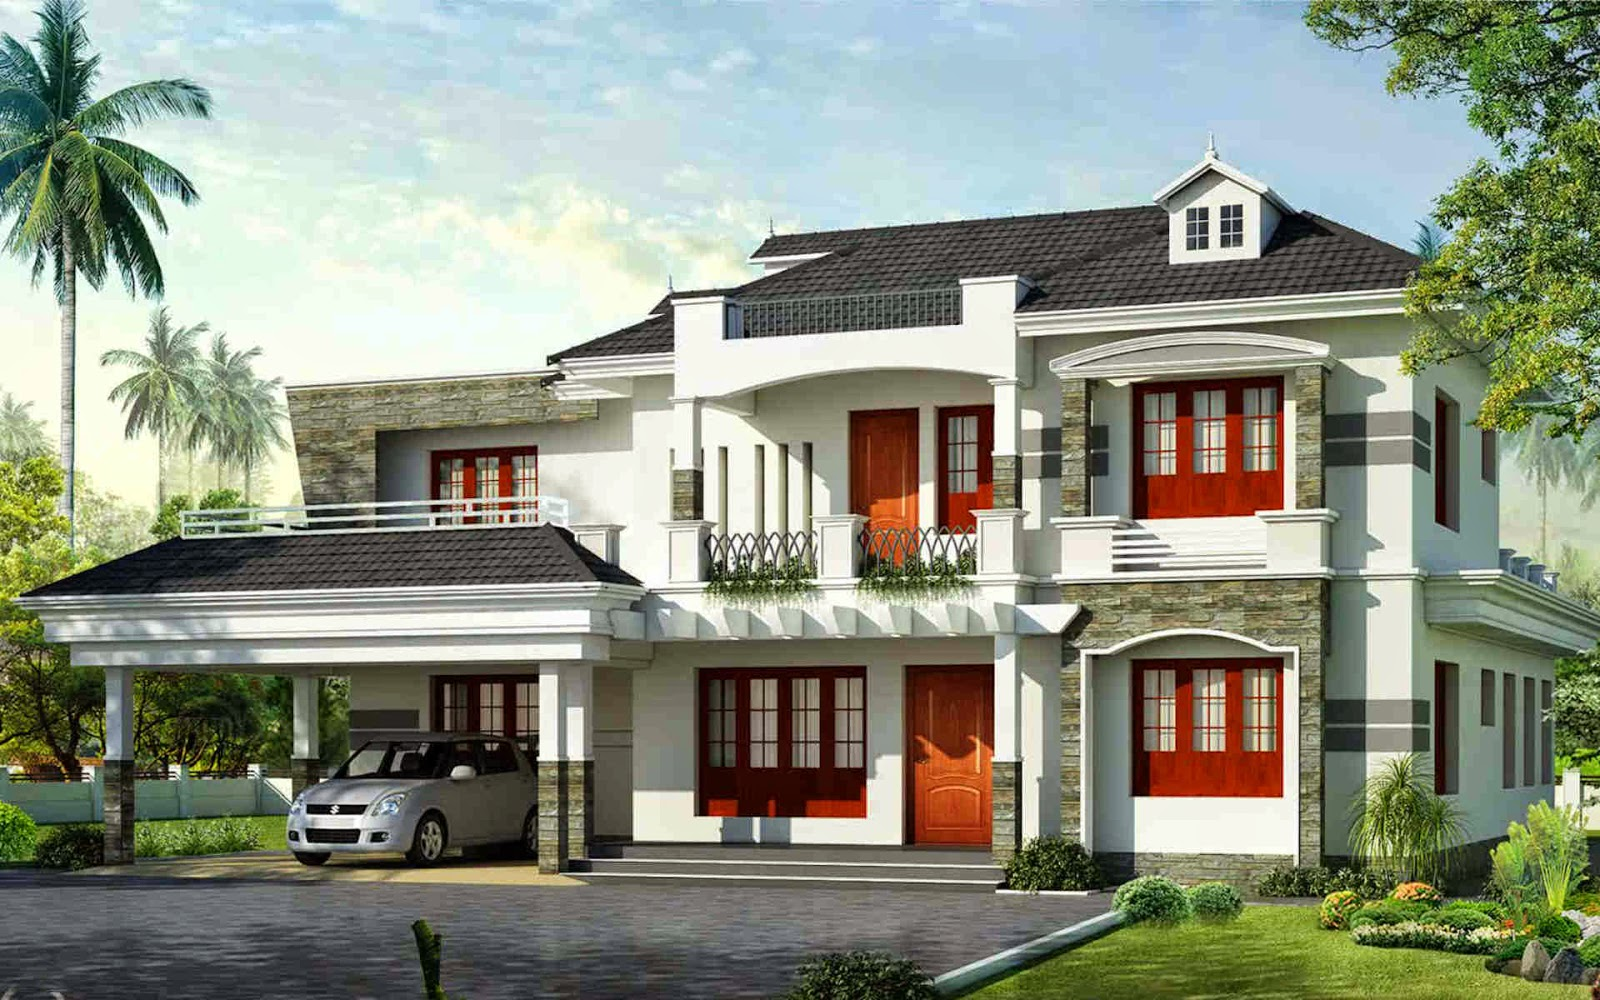 House Exterior Design Pictures Kerala O Wallpaper Picture Photo